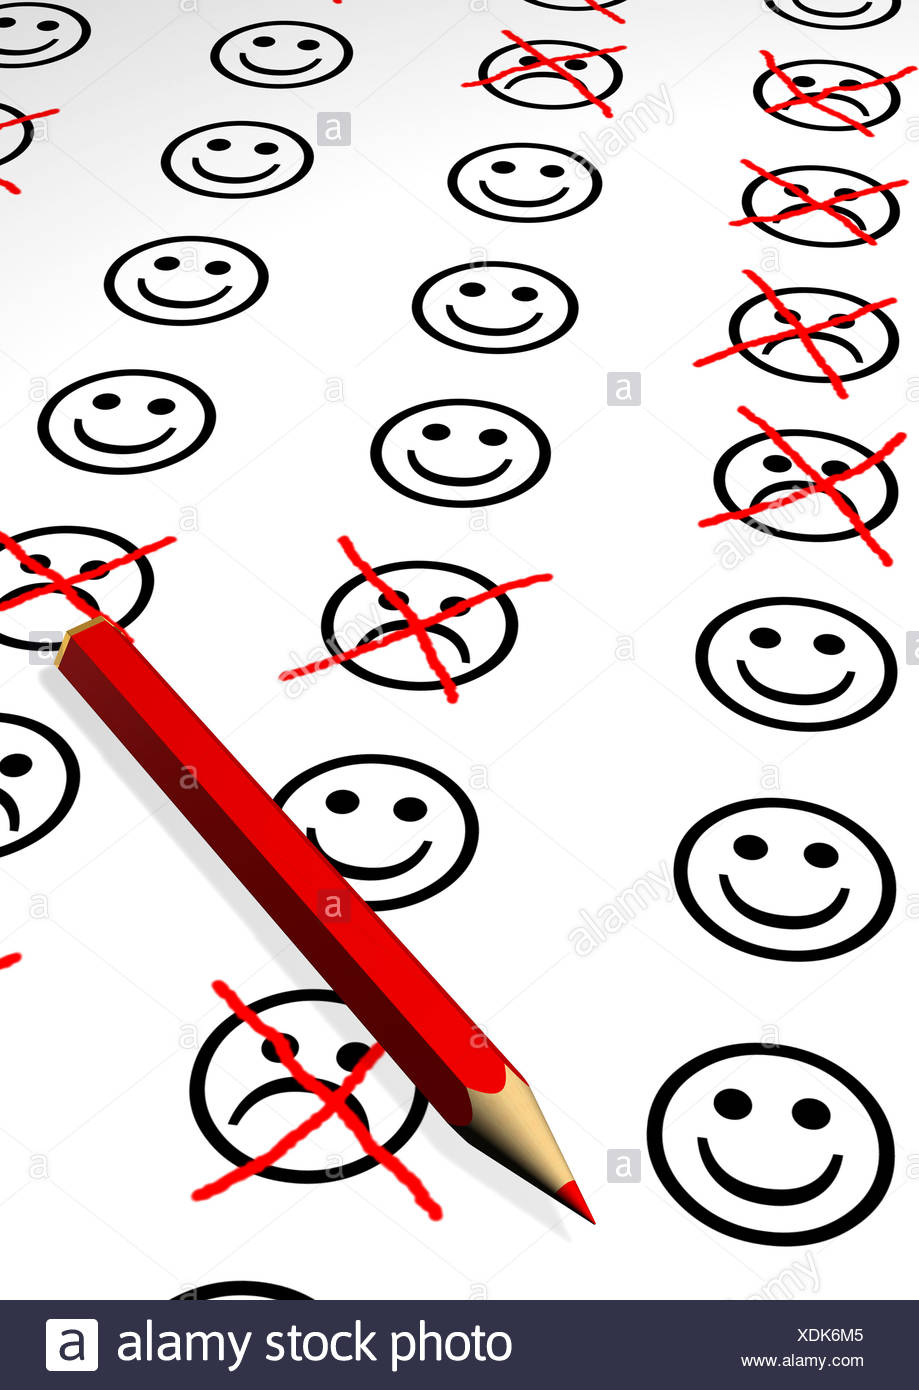 Smileys, emoticons, the sad ones crossed out, red pencil, illustration - Stock Image